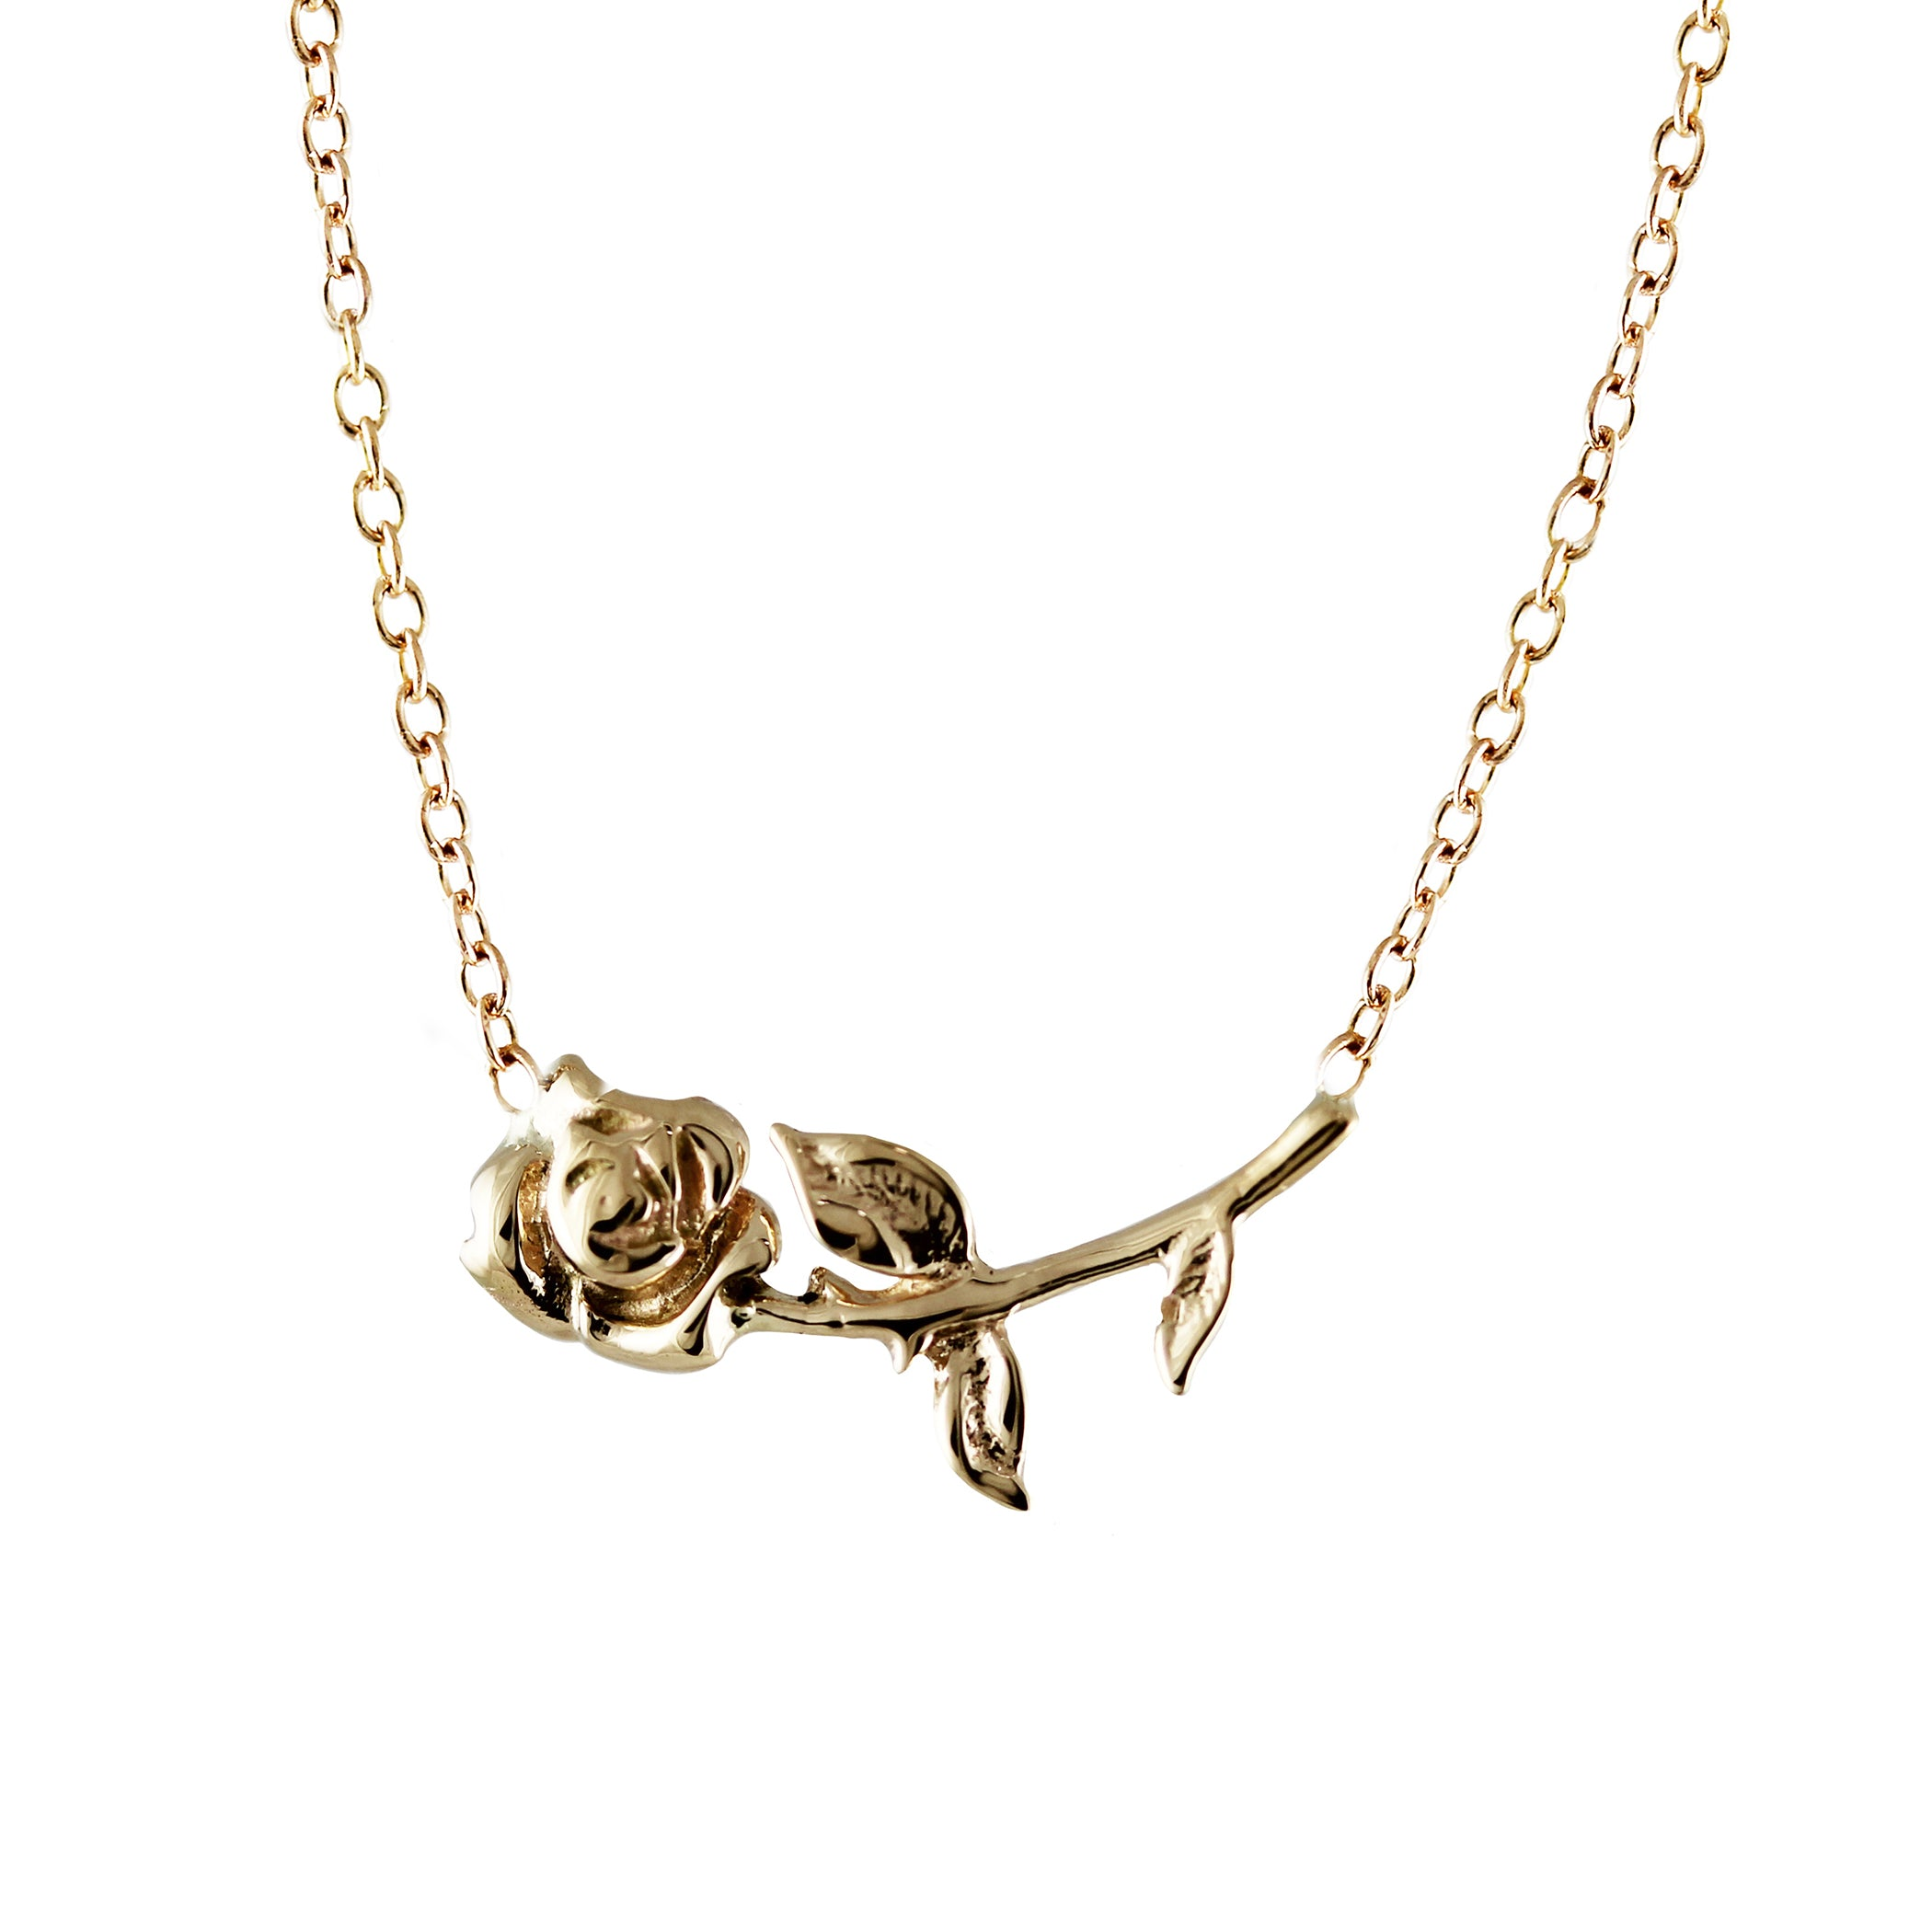 necklace crystals gold swarovski rose with choupette created zoom cat jewellery black karl lagerfeld necklaces